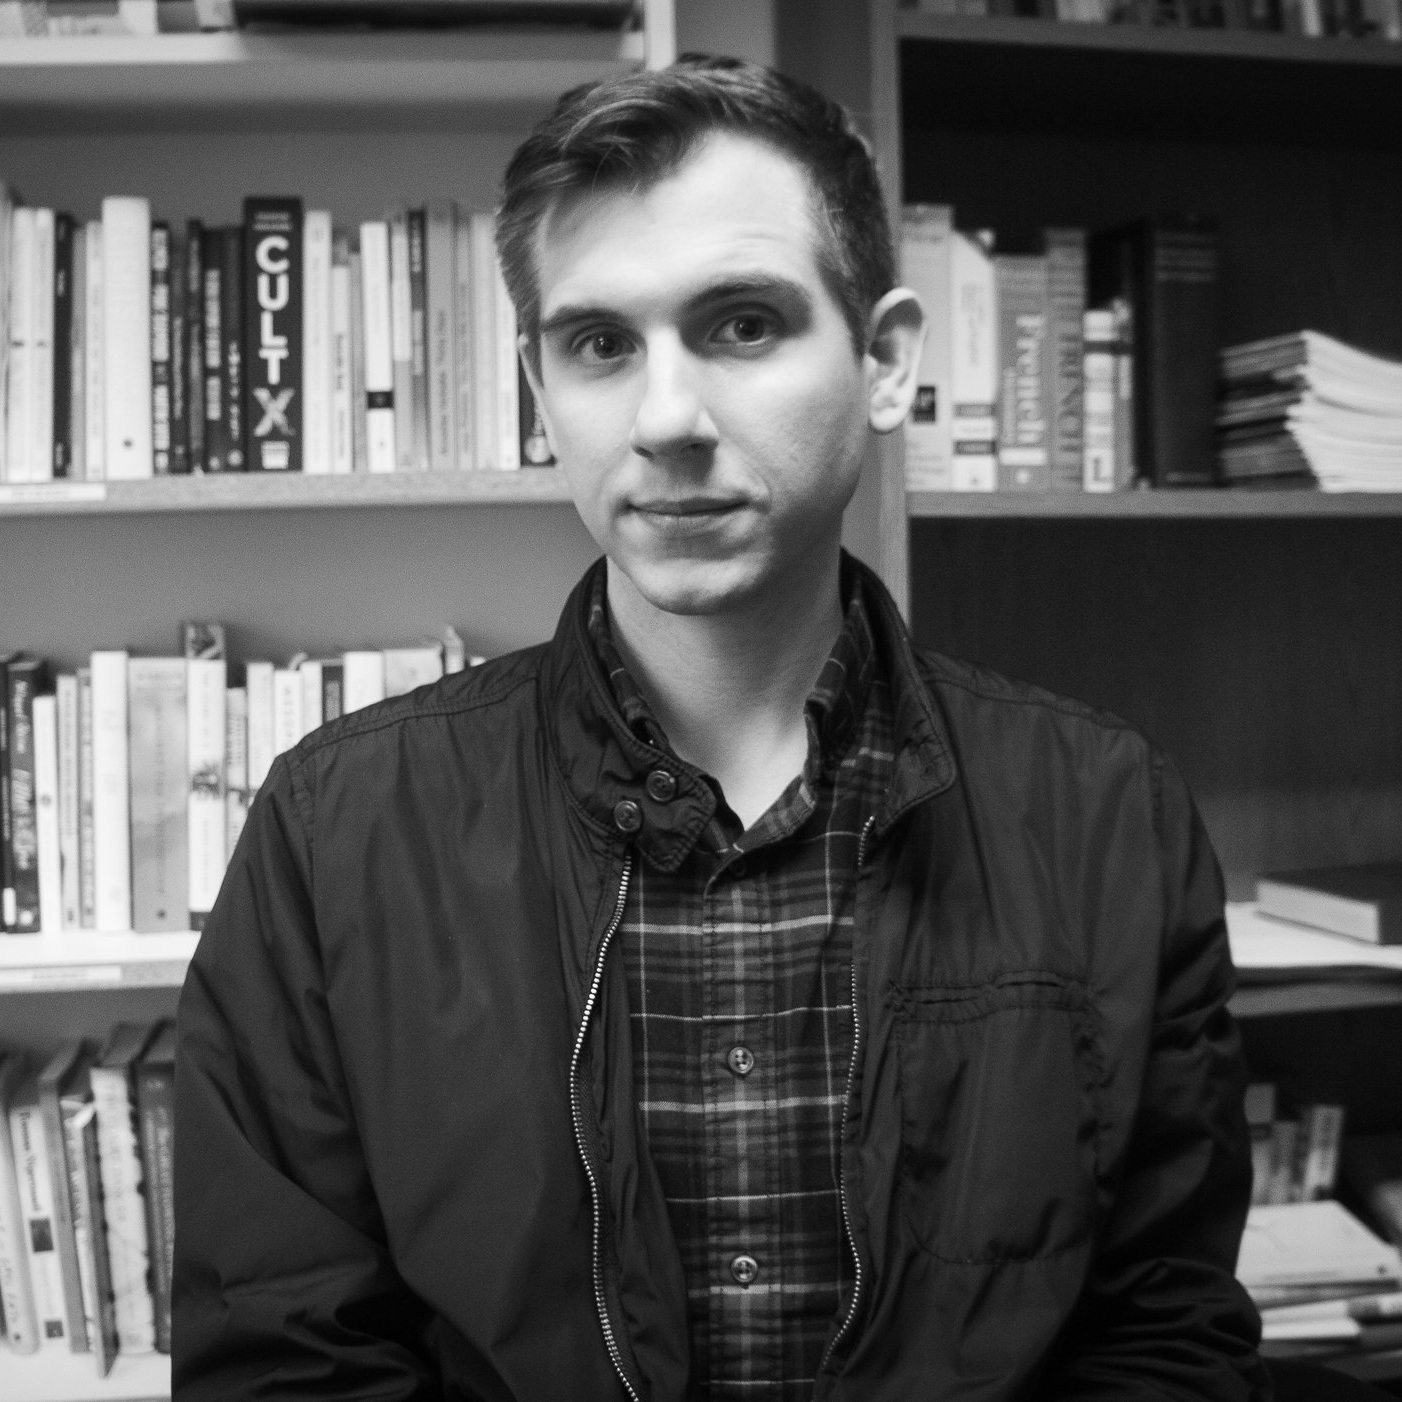 Anthony Blake - is a poet, editor, and designer from Louisville, Kentucky. He's the marketing director for Open Letter Books and holds an MFA in poetry from the University of Arkansas, where he co-founded and edited The Arkansas International.Poems